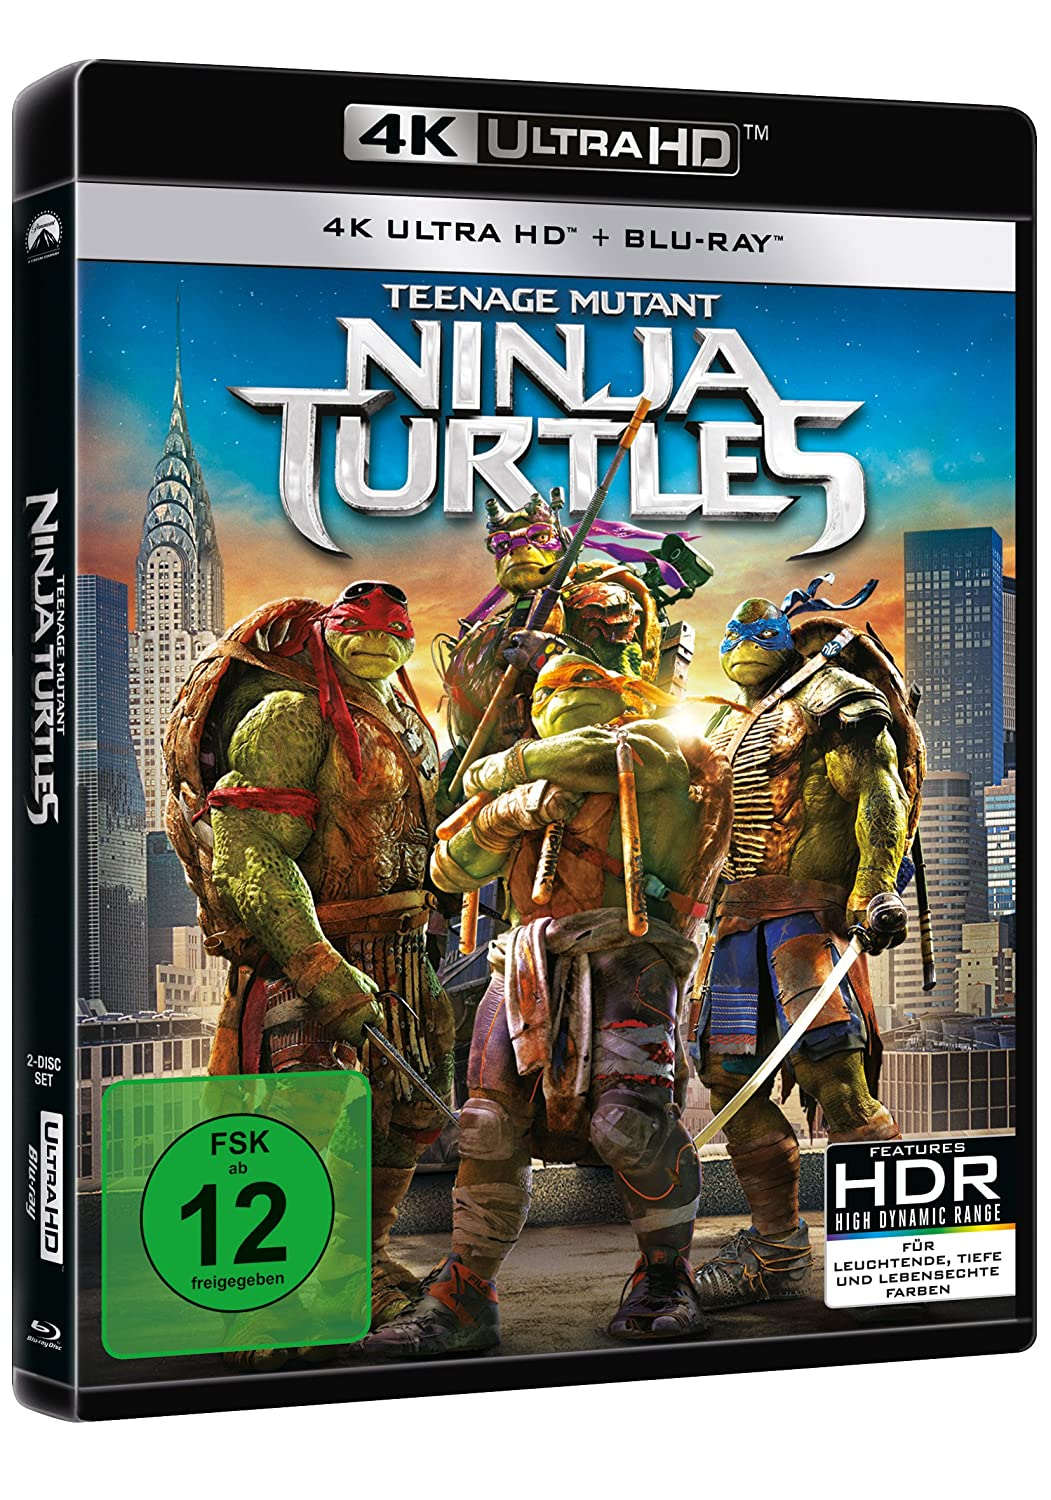 Teenage Mutant Ninja Turtles - 4K UHD Alemania Blu-ray ...